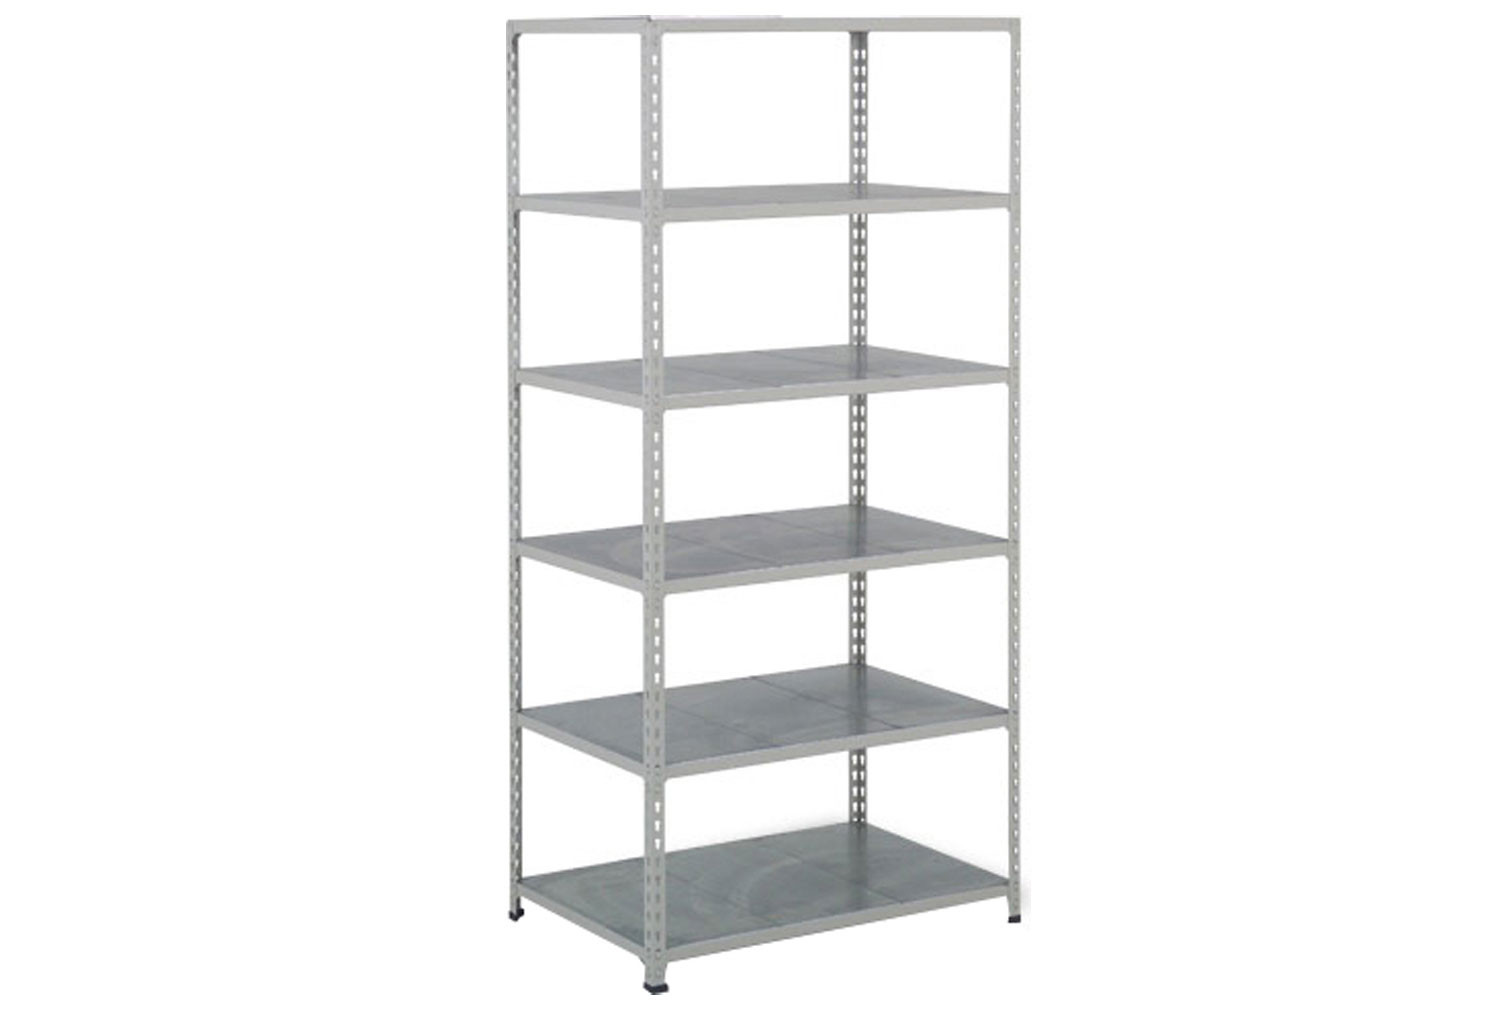 Rapid 2 Shelving With 6 Galvanized Shelves 1220wx2440h (Grey)